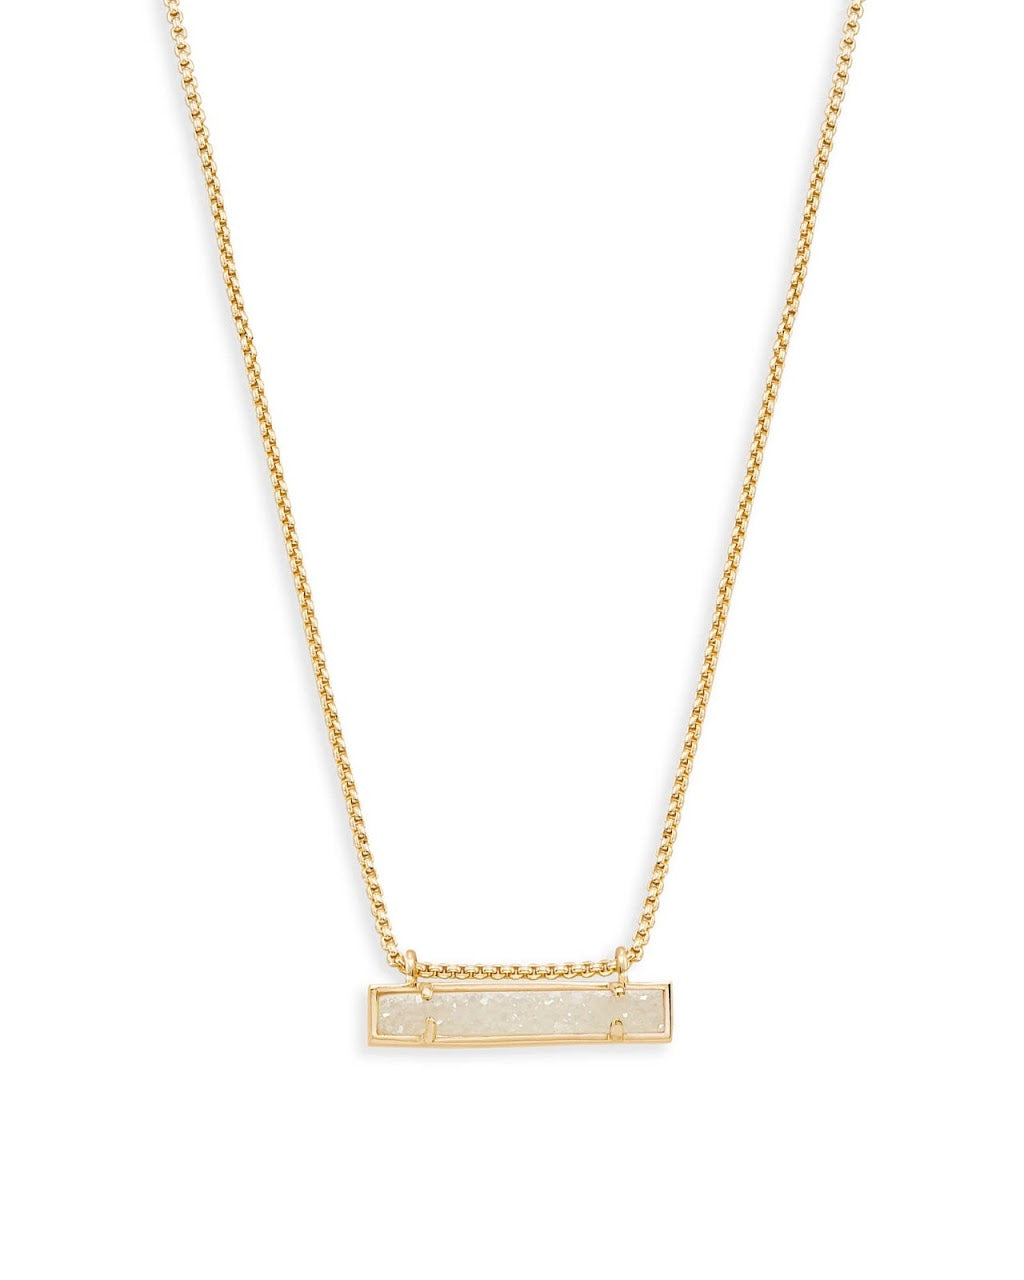 Leanor Gold Bar Necklace-Iridescent Drusy